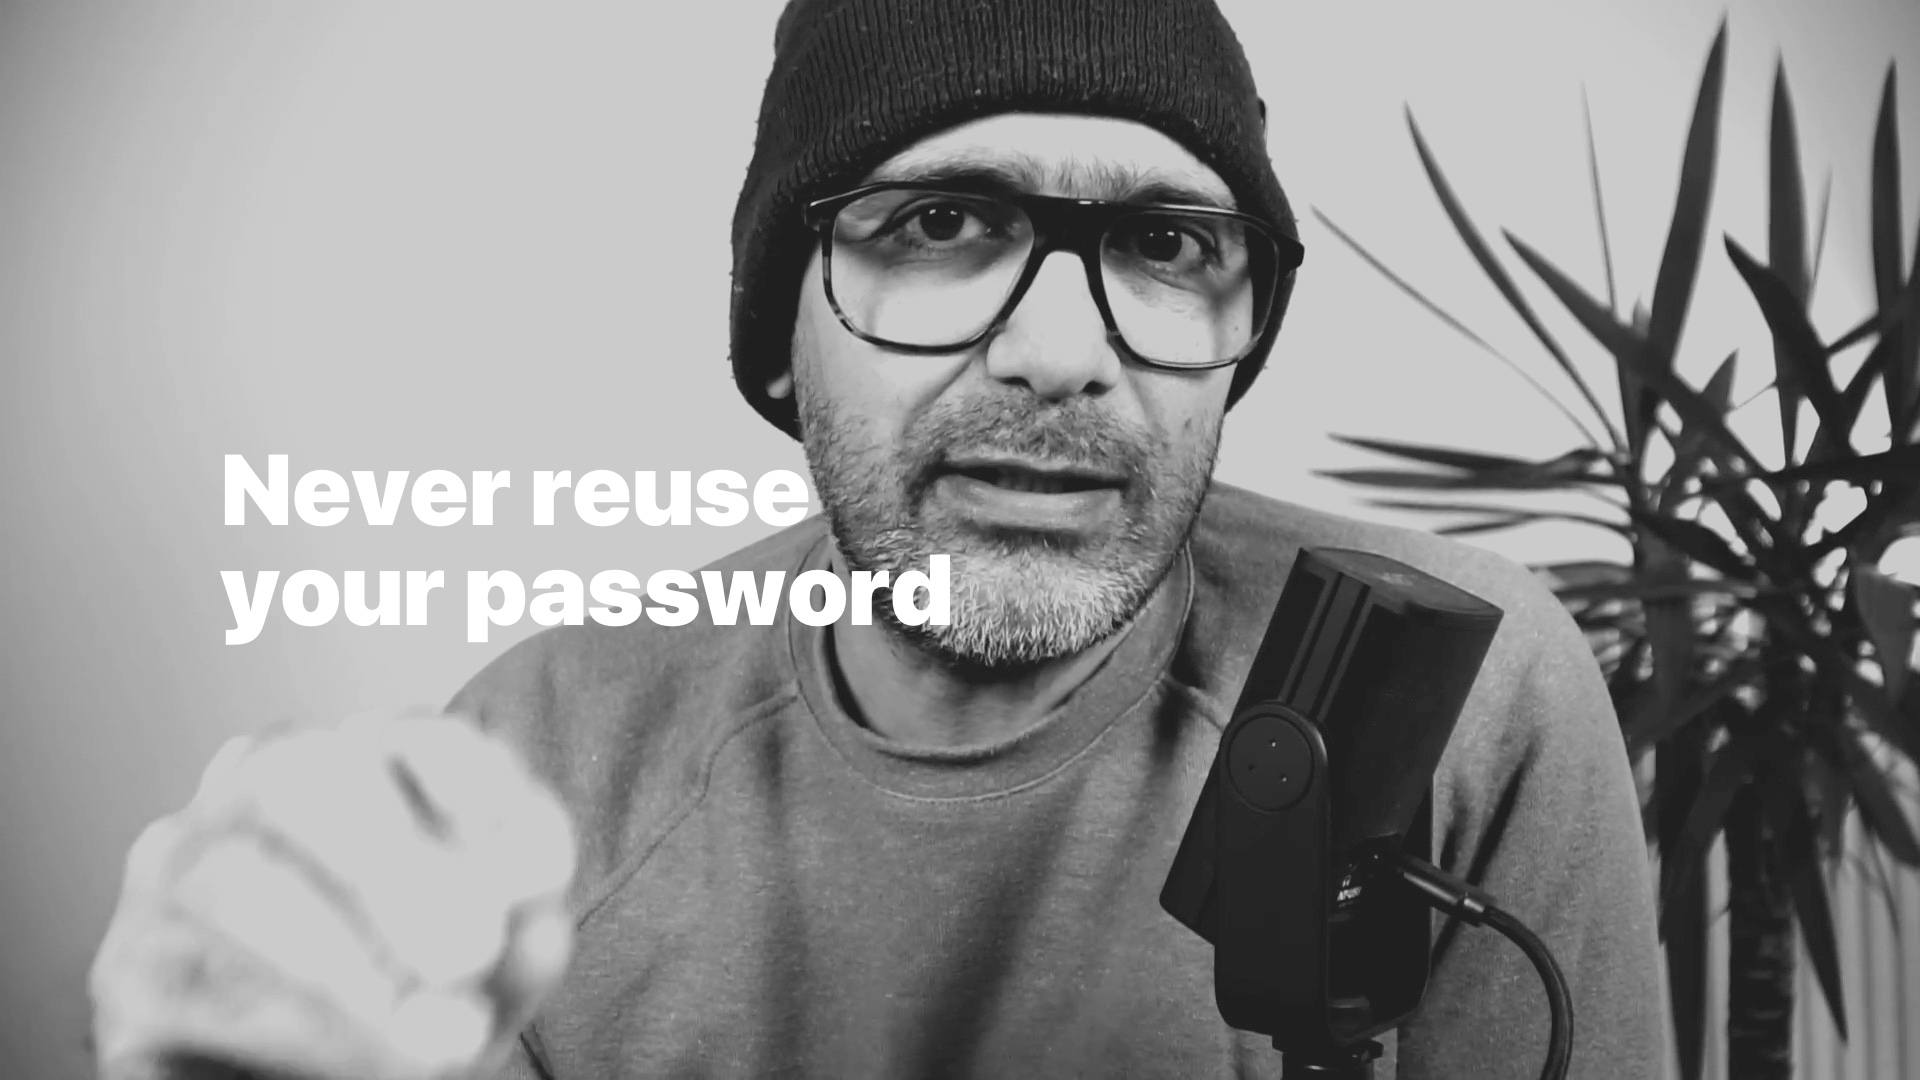 Never reuse your password